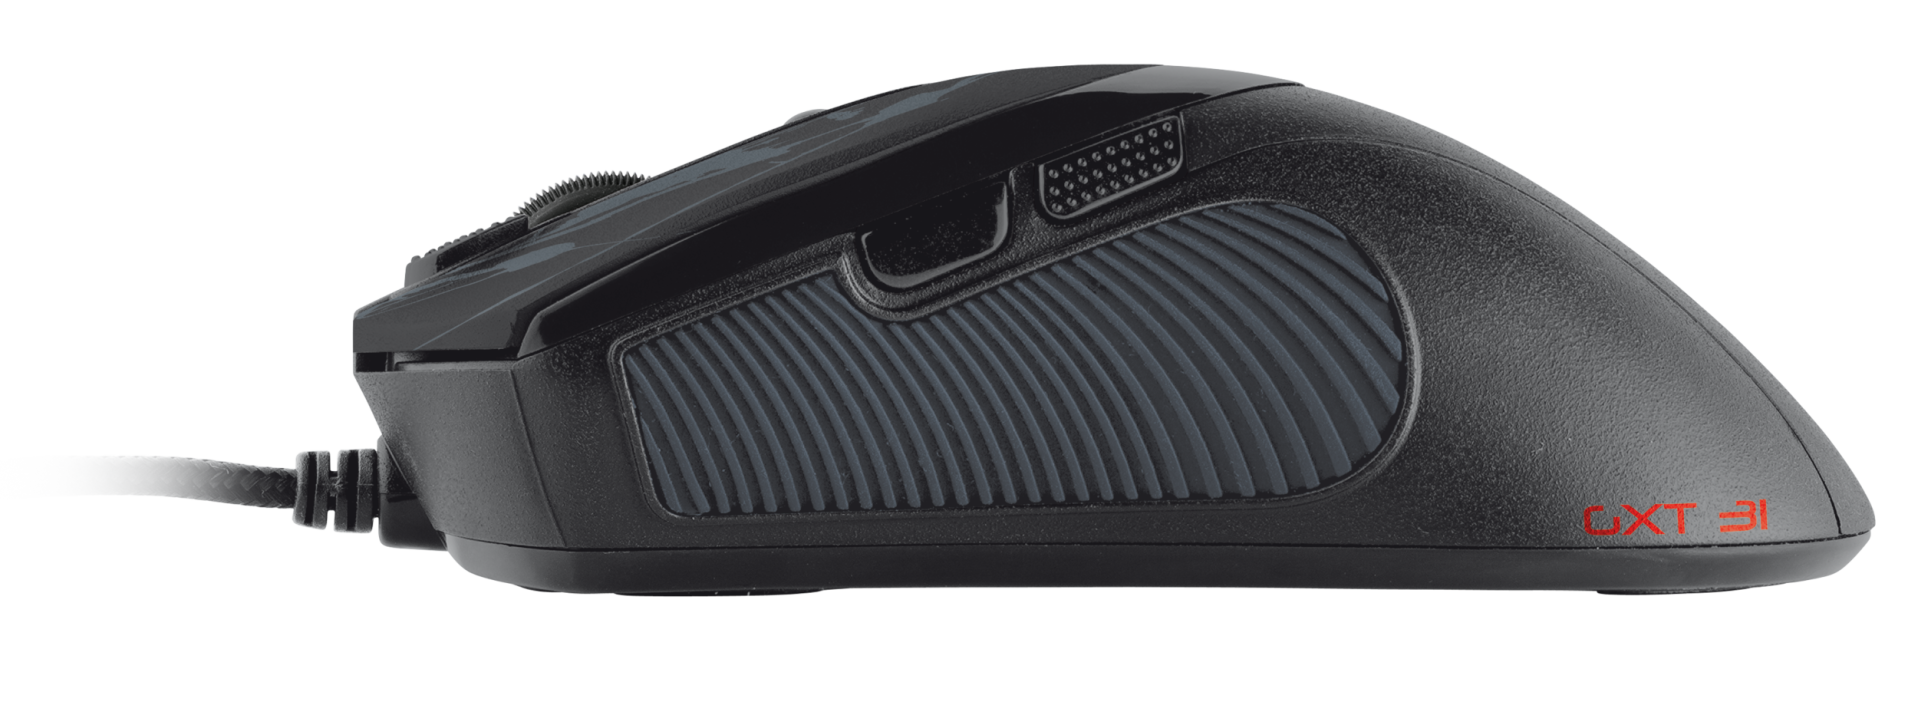 GXT 31 Gaming Mouse-Side